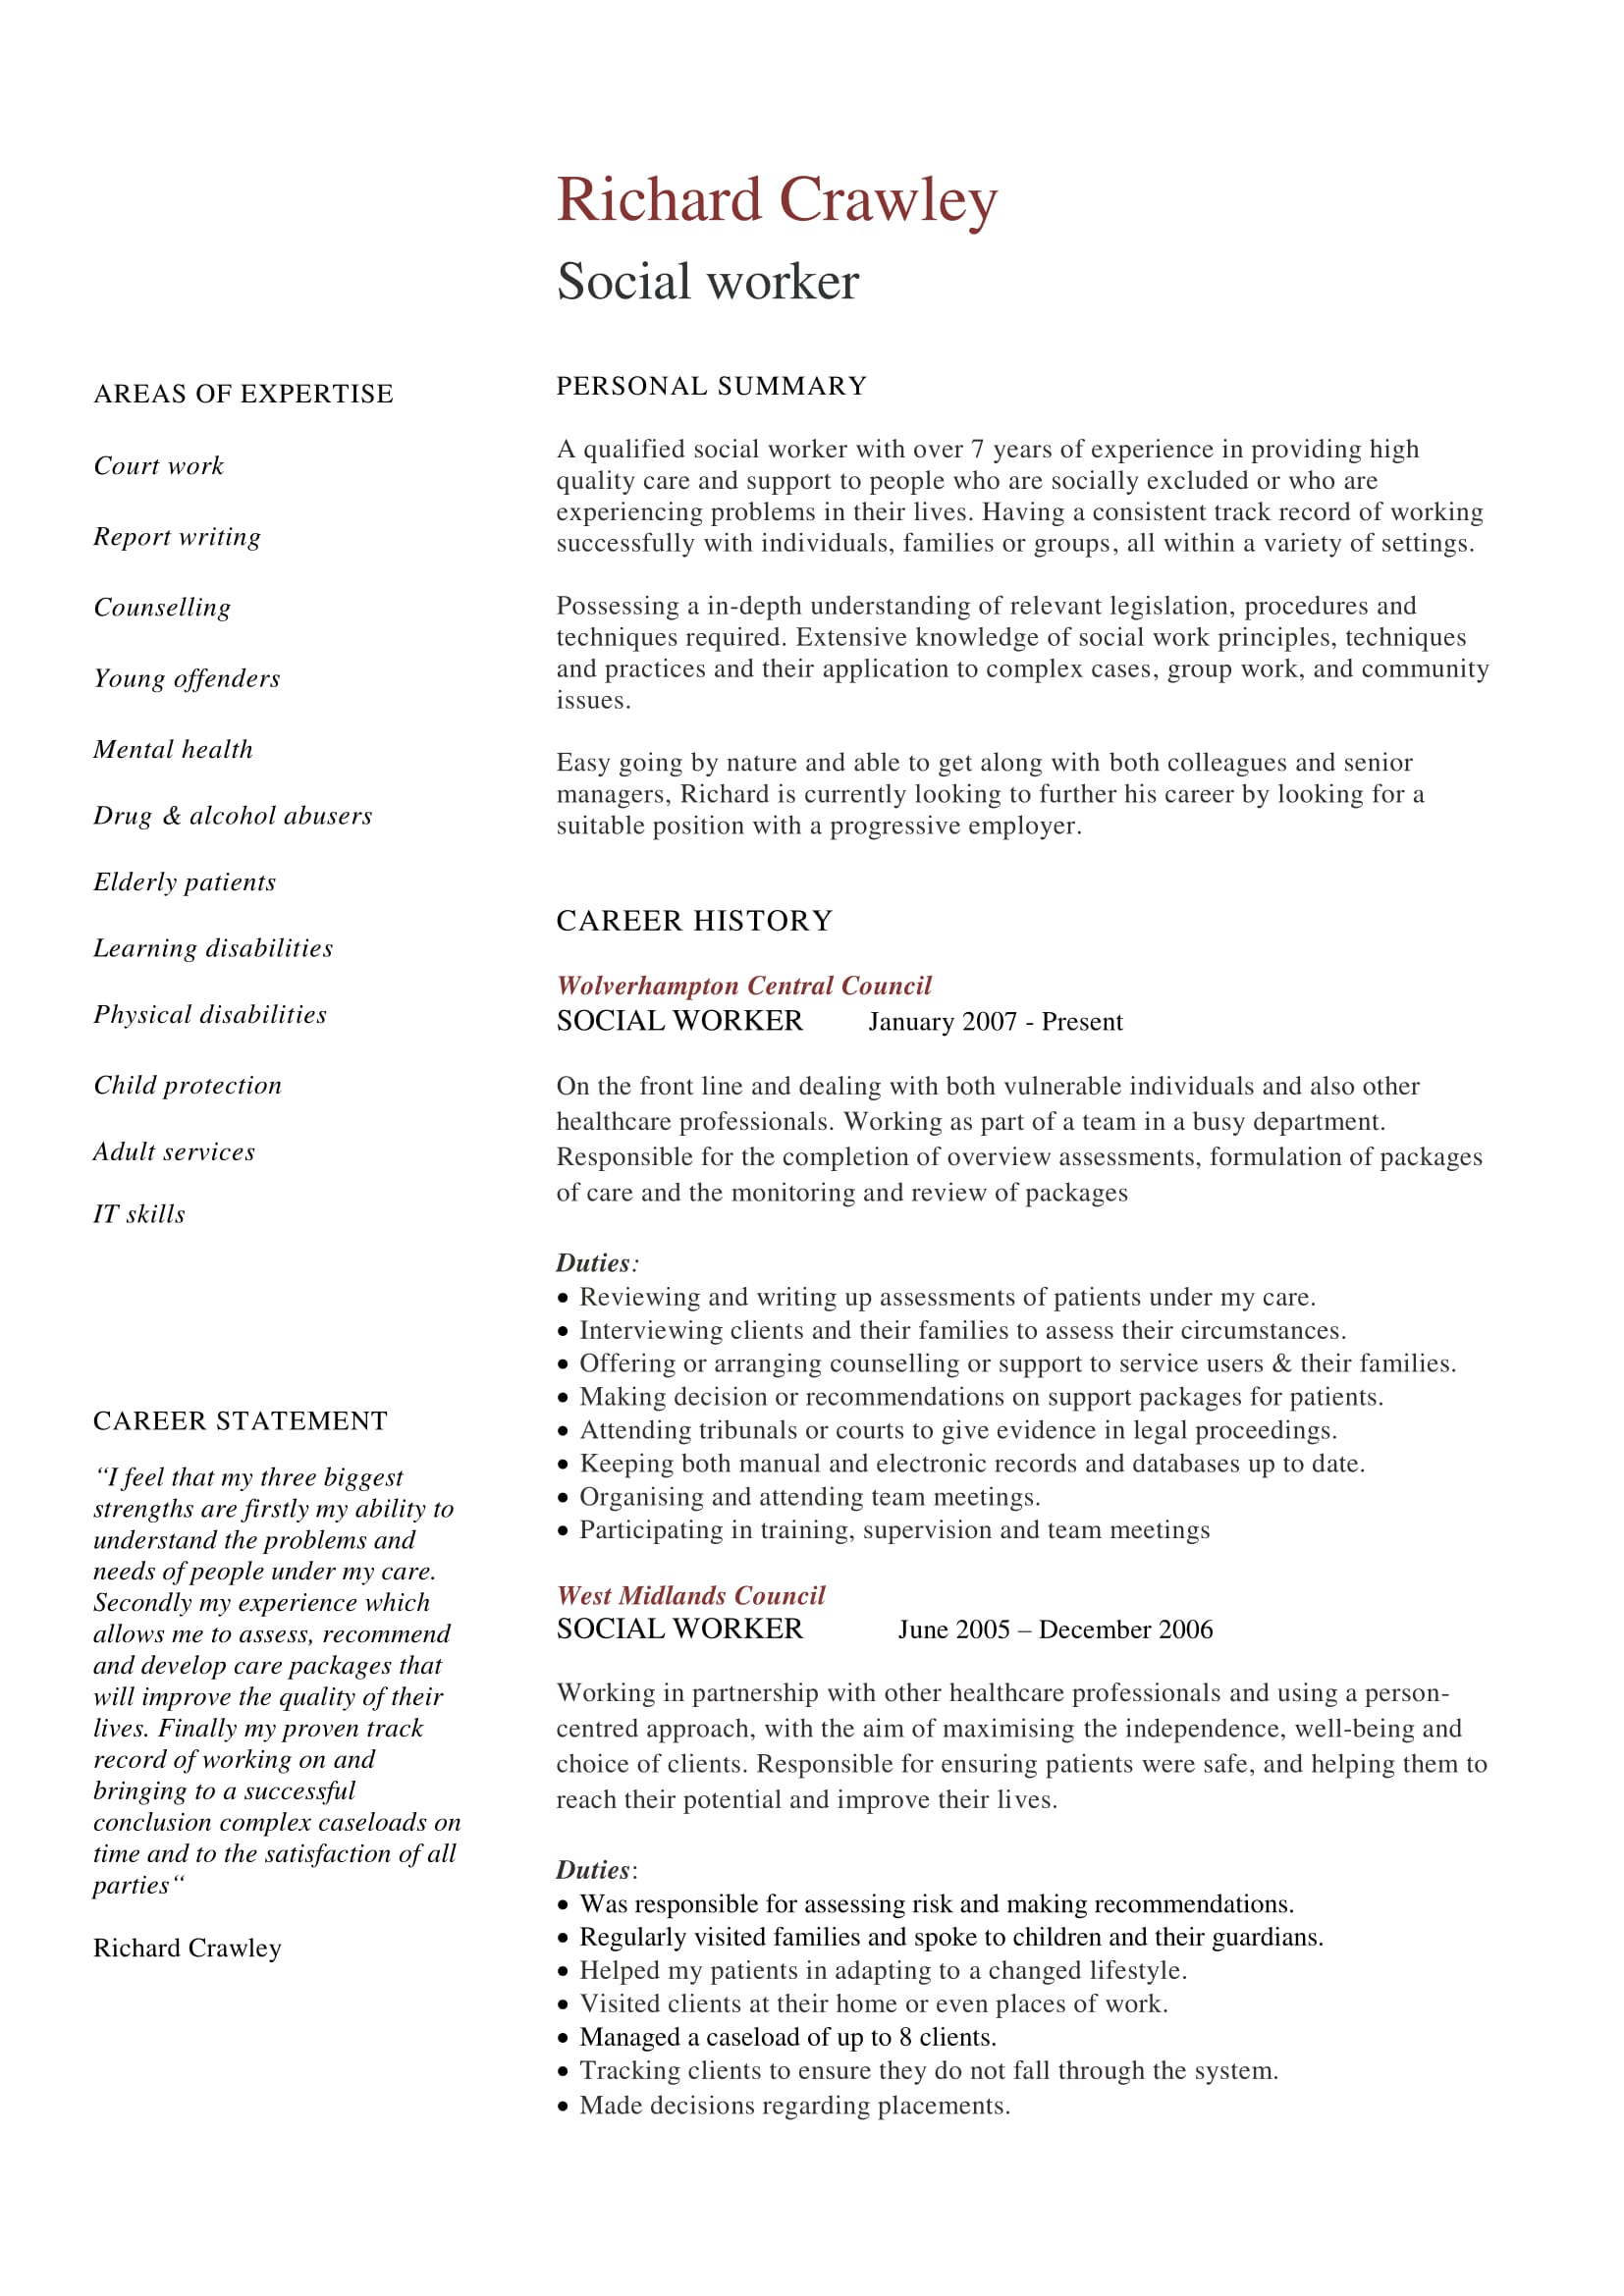 social worker cv sample - Social Worker Resume Sample